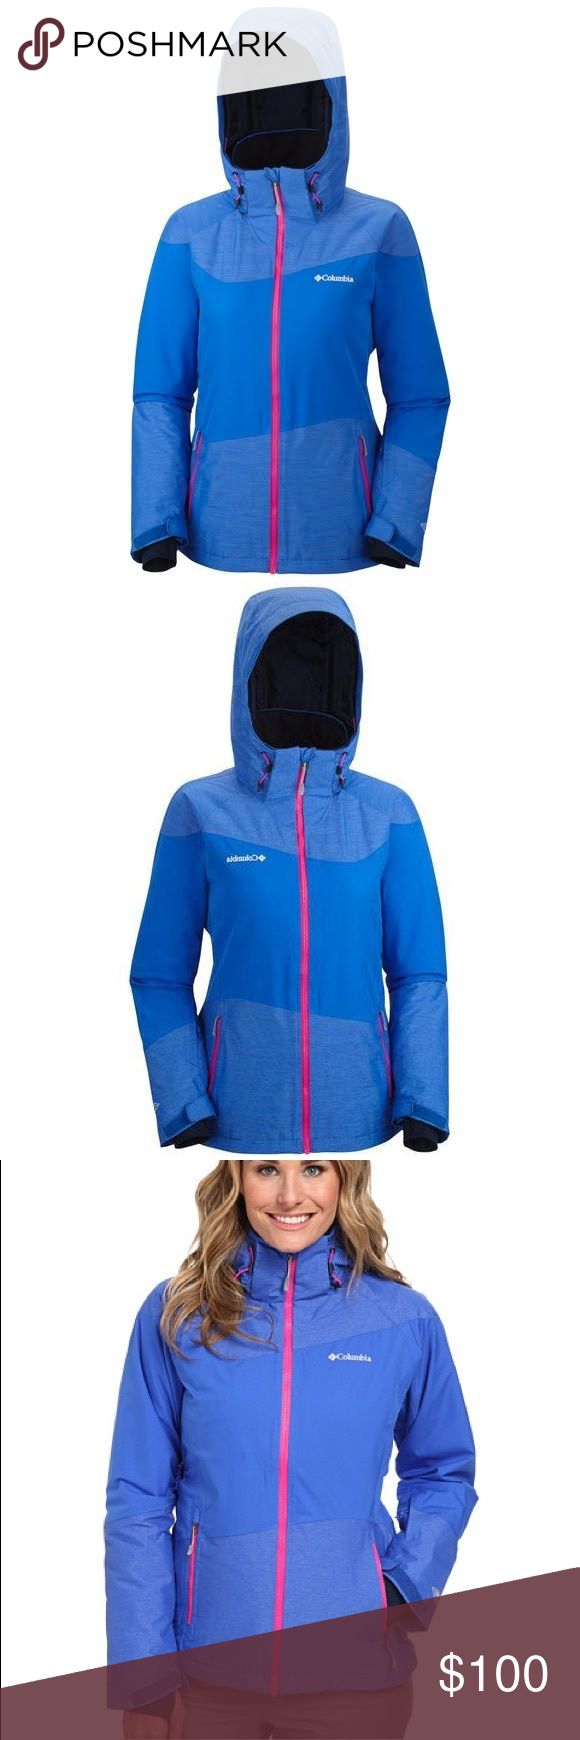 Women's Columbia Parallel Grid Jacket Omni-Heat™ thermal reflective and insulated Omni-Tech™ waterproof/breathable fully seam sealed Omni-Shield™ advanced repellency Removable, adjustable storm hood Underarm venting Waterproof zippers Drawcord adjustable hem Adjustable, snap back powder skirt Gusset detail Interior security pocket Zippered hand pockets Media and goggle pocket Ski pass pocket Adjustable outer cuff-inner comfort cuff Abrasion resistant chin guard Columbia Jackets & Coats